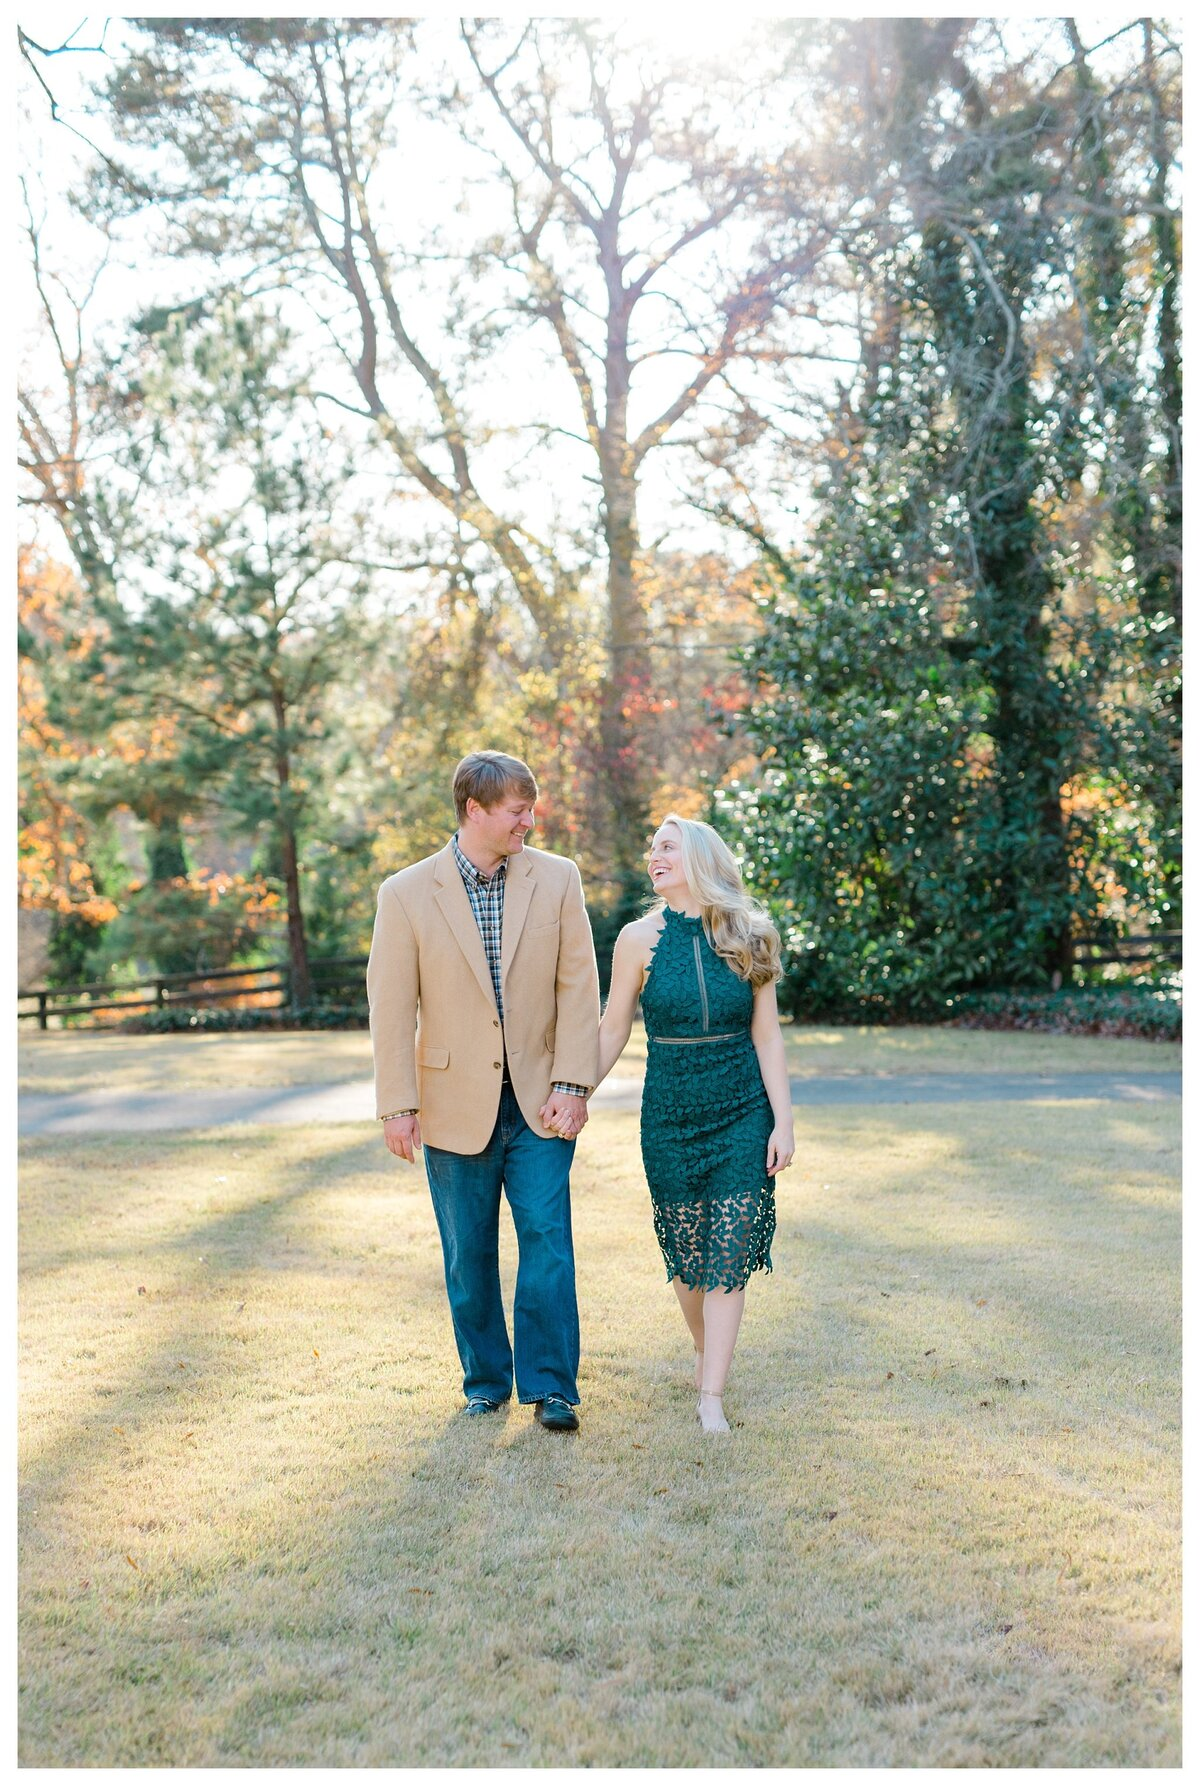 canady-engagements-atlanta-wedding-photographer-07